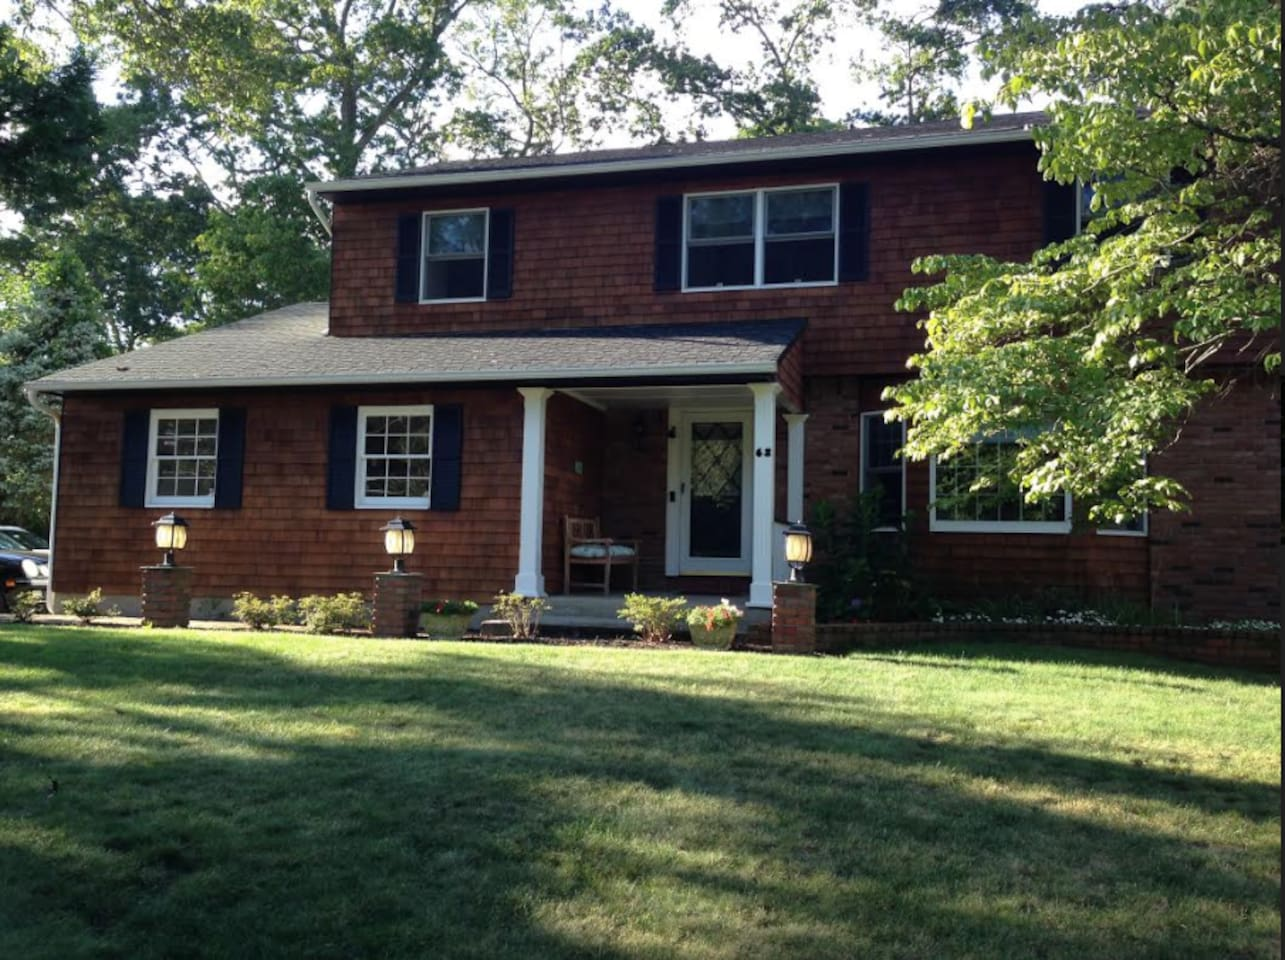 Newly fully renovated Colonial House with beautifully landscaped back yard,  triple decks, and a gas grill.  A library/office with a printer/scanner/fax machine, and a game room featuring pool and ping pong tables, and tread mill.